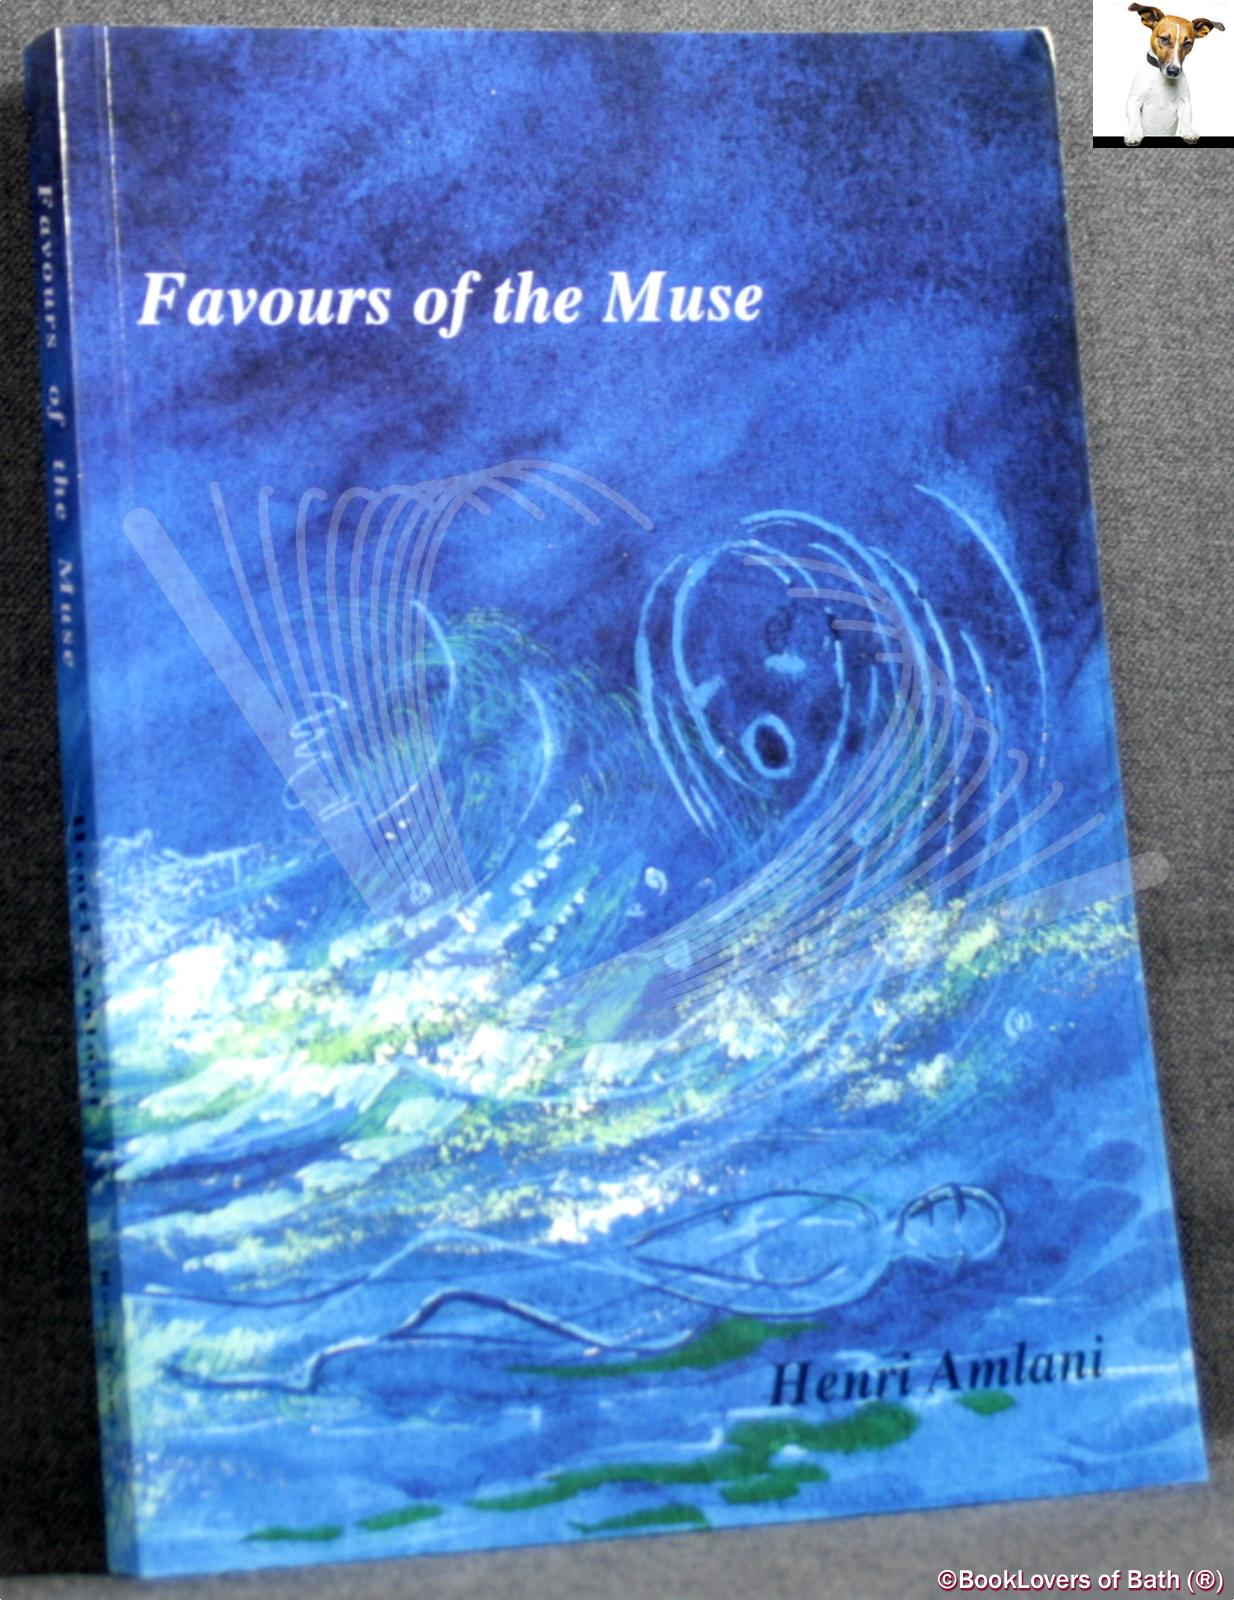 Favours of the Muse: Renaissance Sonnets for a Modern Age, and A Warning for All Poets - Henri Amlani